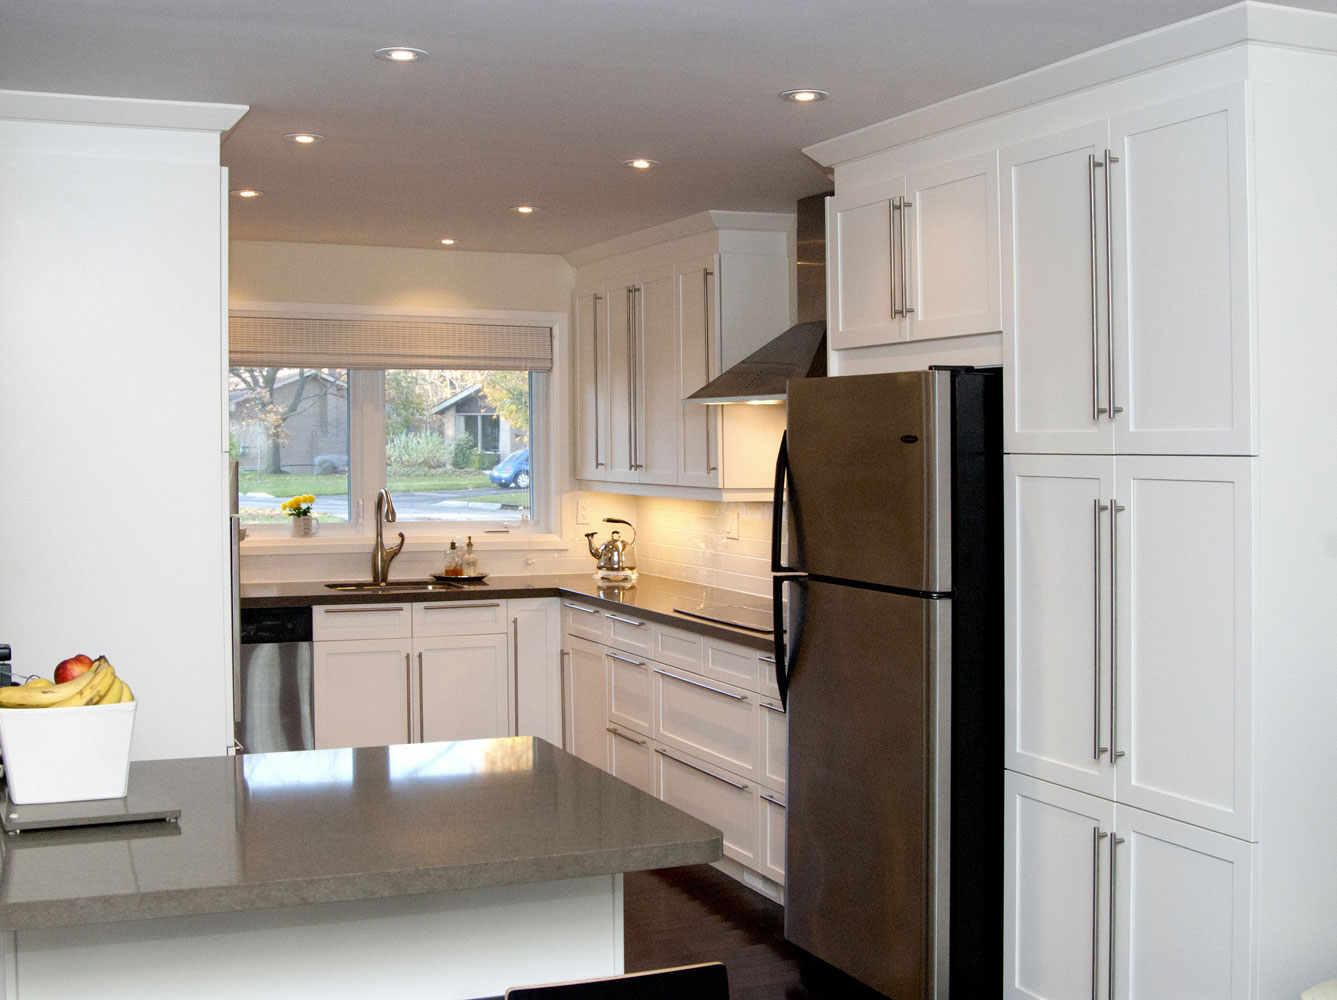 Clean white u-shaped kitchen design with dark hardwood floors and stainless steel appliances